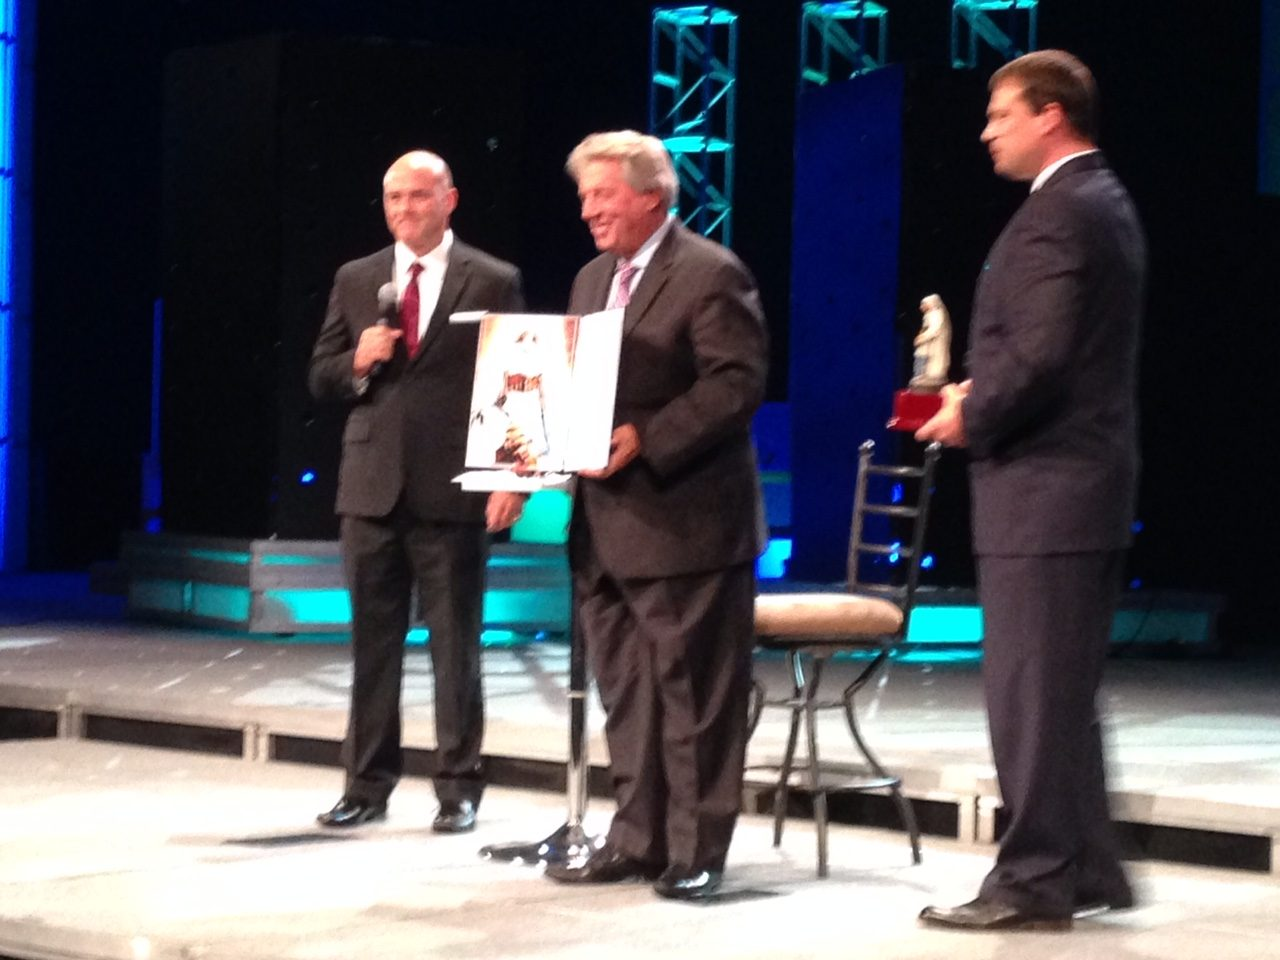 John Maxwell receives the Mother Teresa Prize for Global Peace and Leadership at Lead Through Change in Asheville, NC